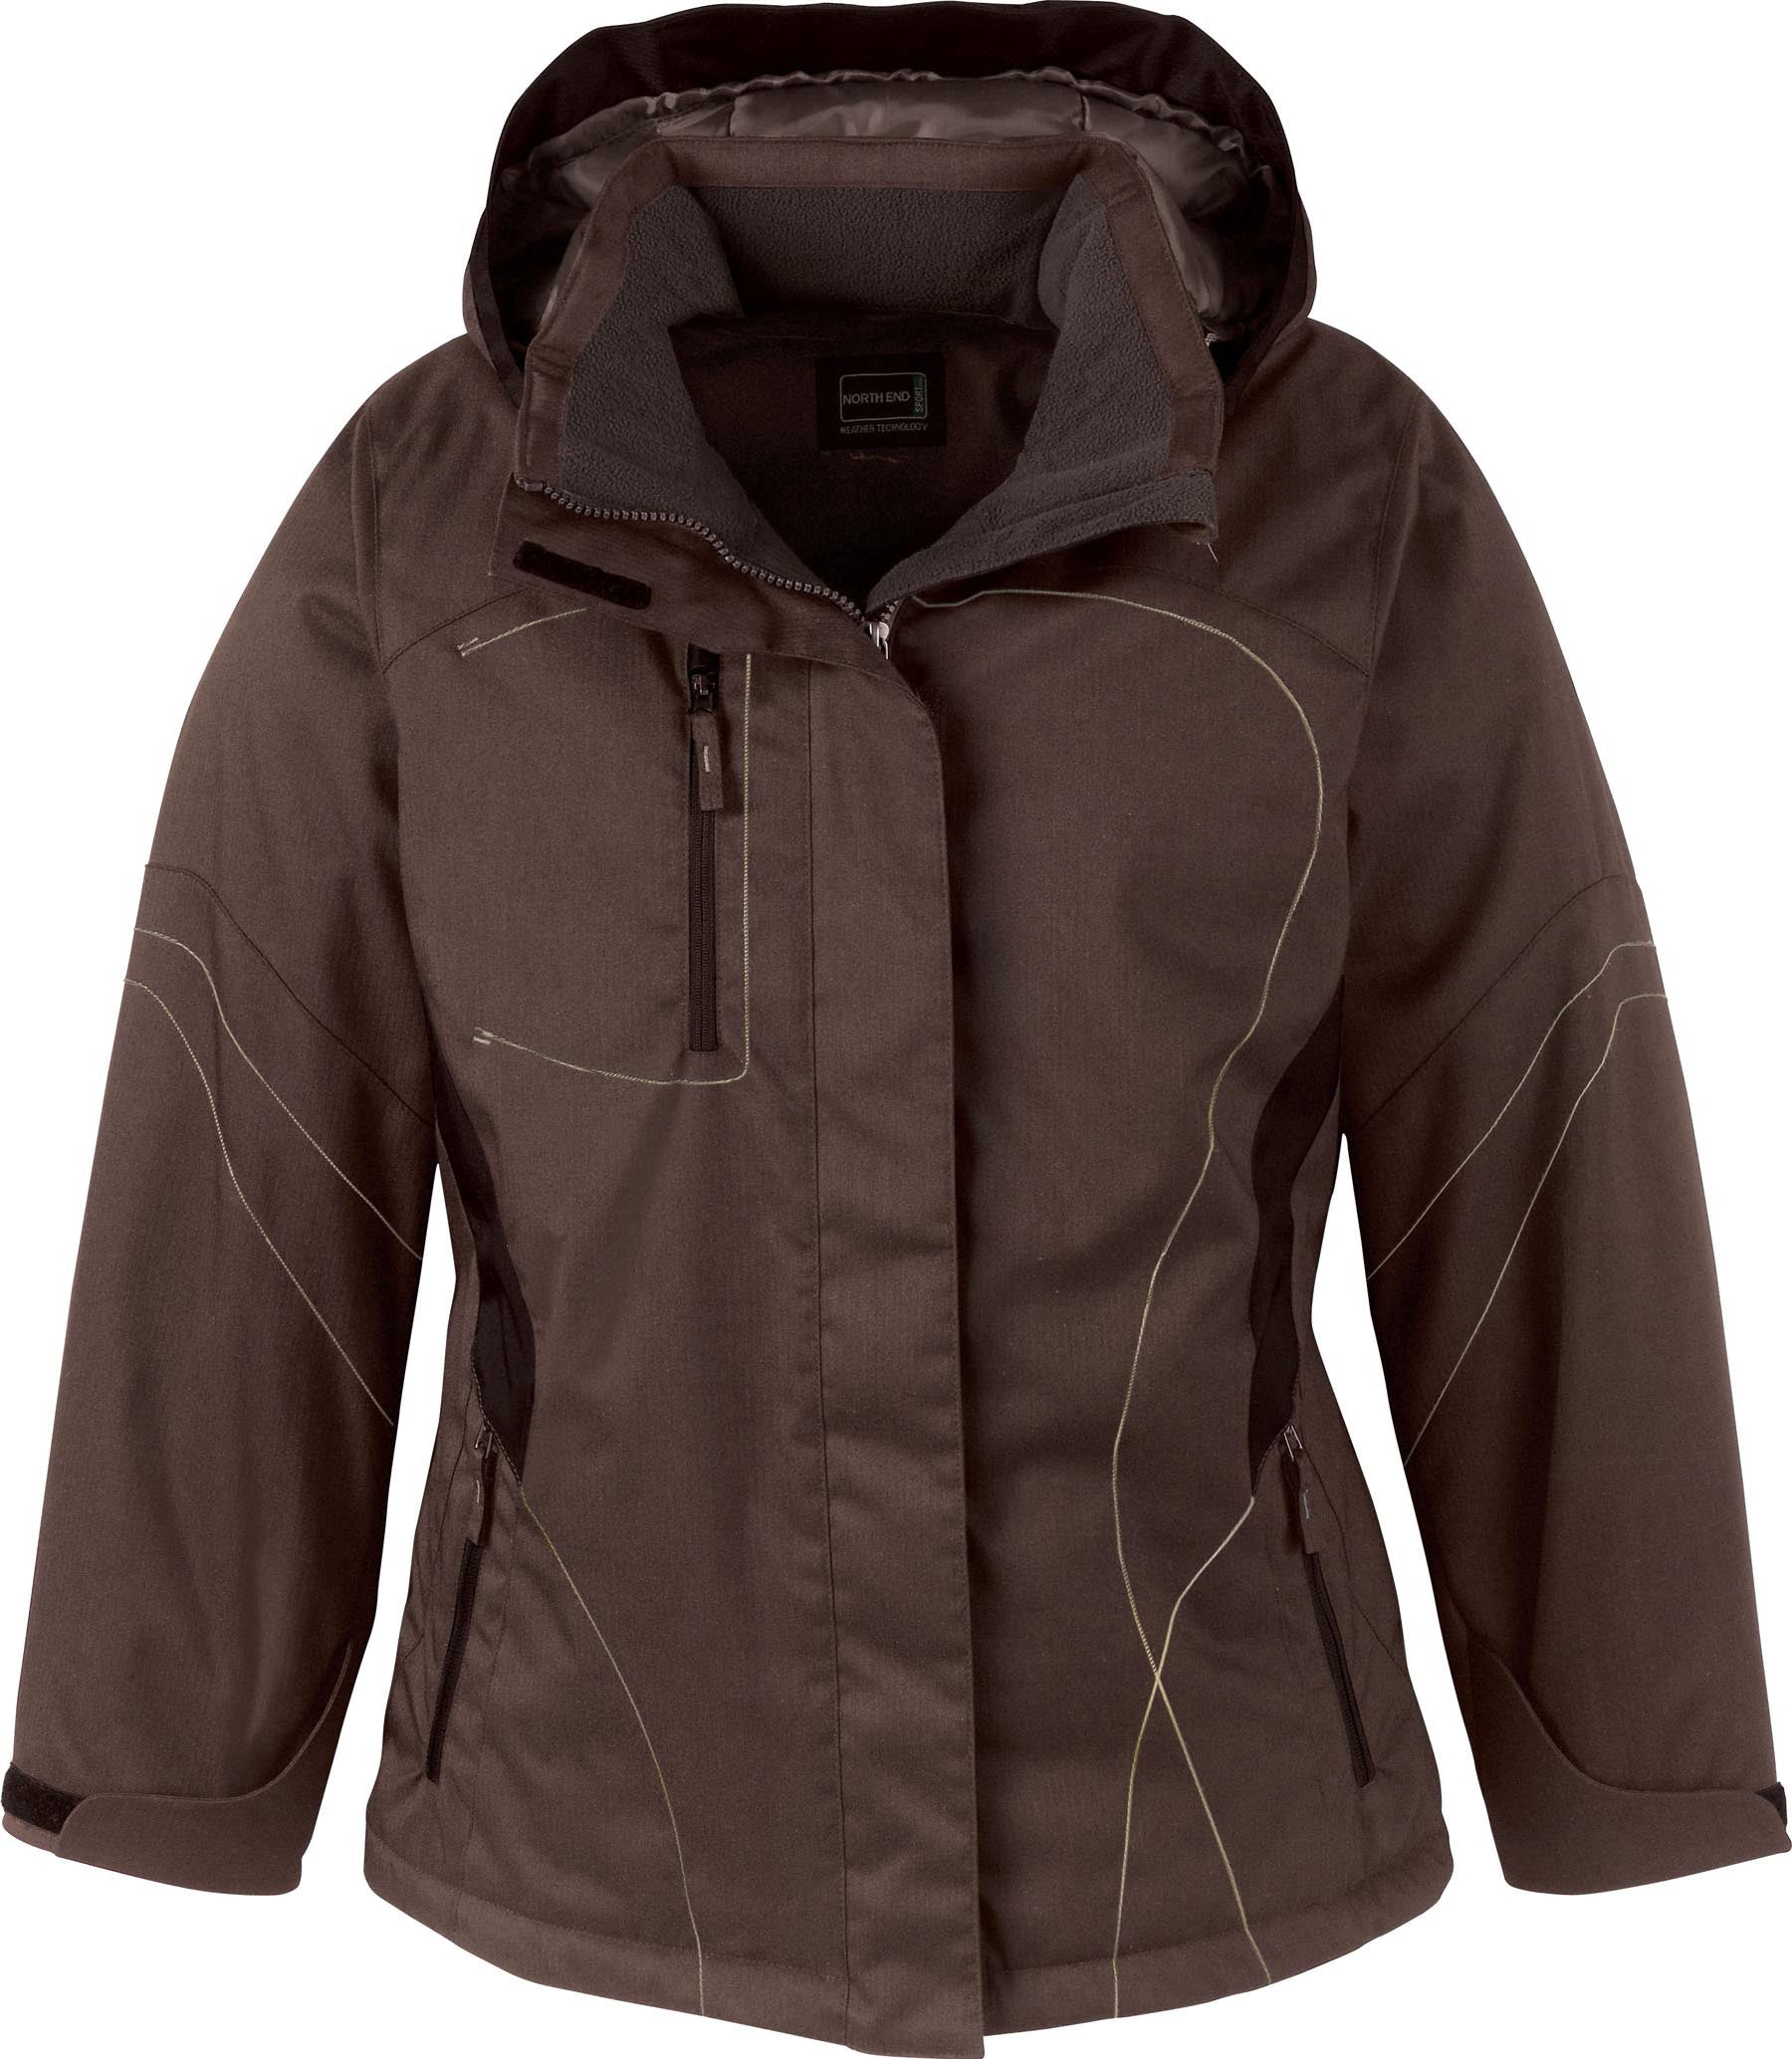 NORTH END LADIES TRAVERSE TWO TONED INSULATED JACKET